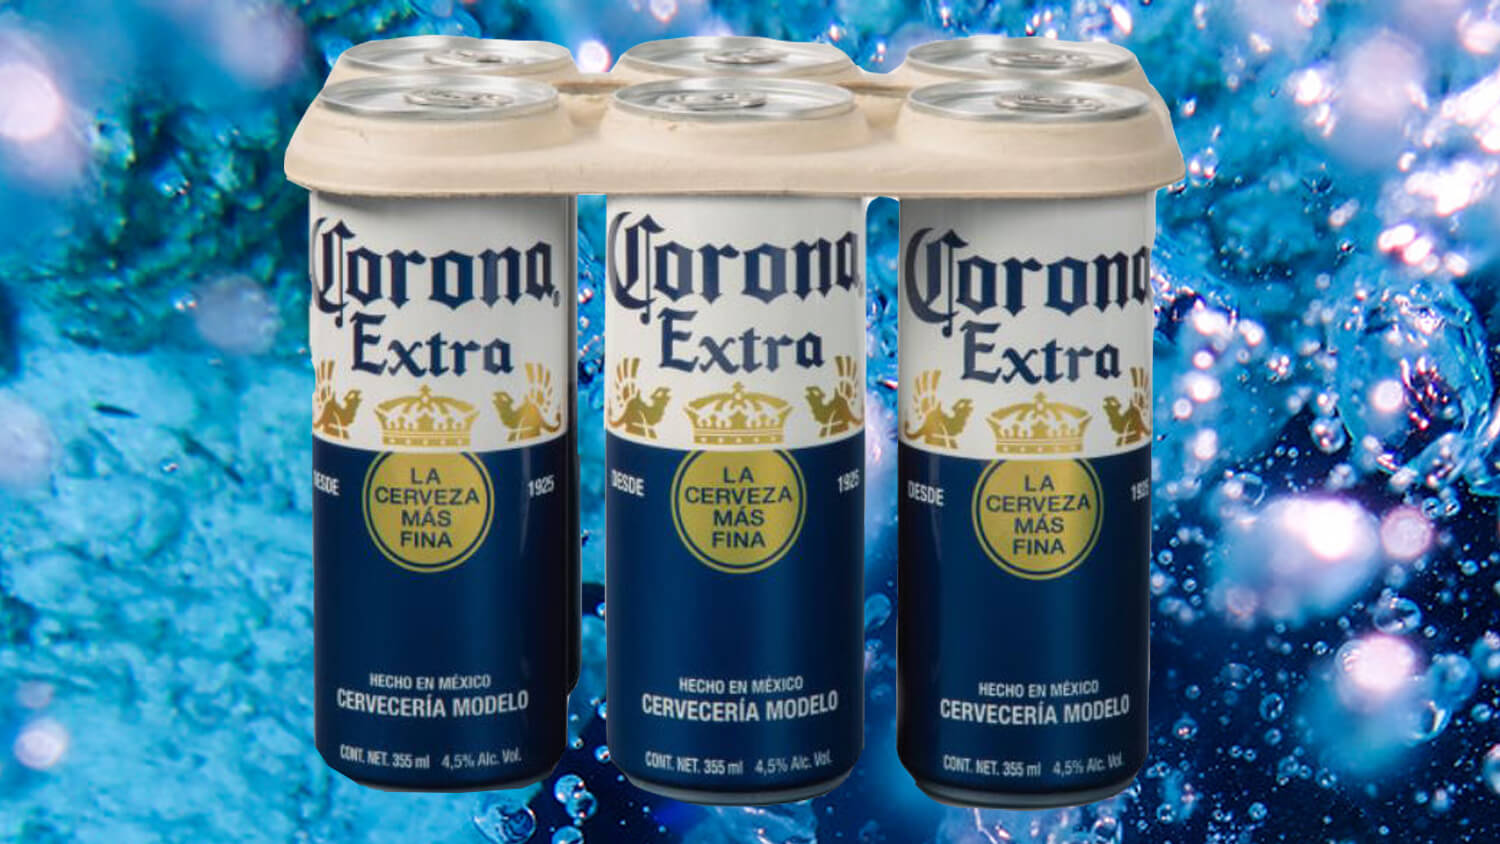 Corona Beer Trialing Plant-based Biodegradable Plastic-free Six-pack Rings photo